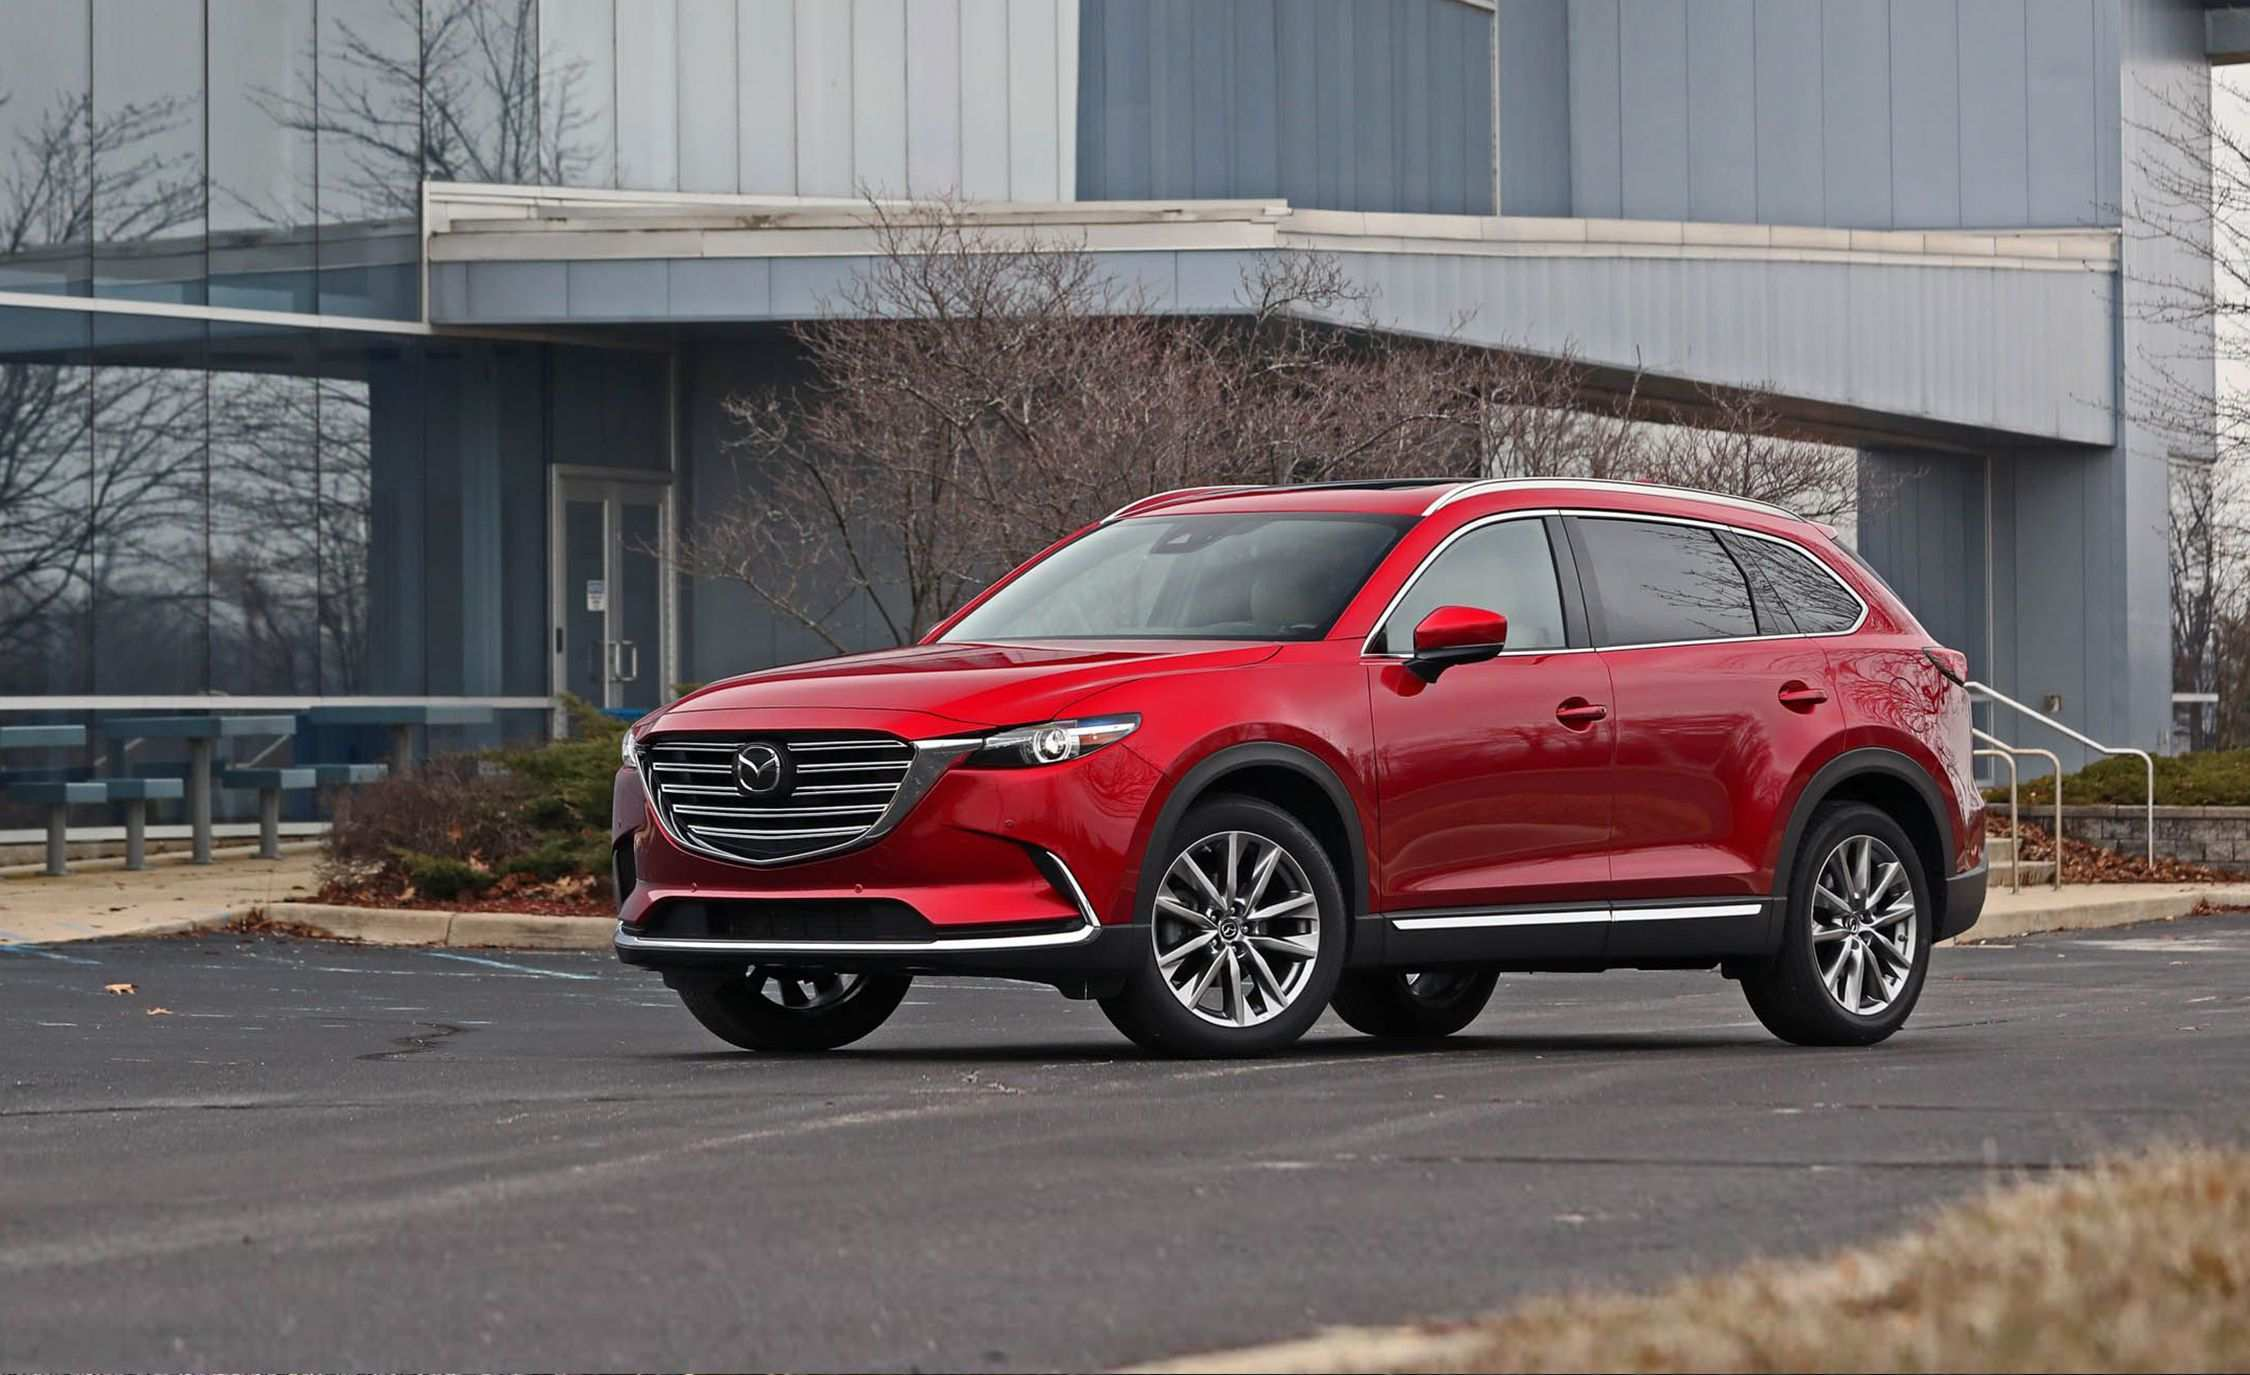 28 Great The Mazda X9 2019 Release Specs And Review Research New with The Mazda X9 2019 Release Specs And Review